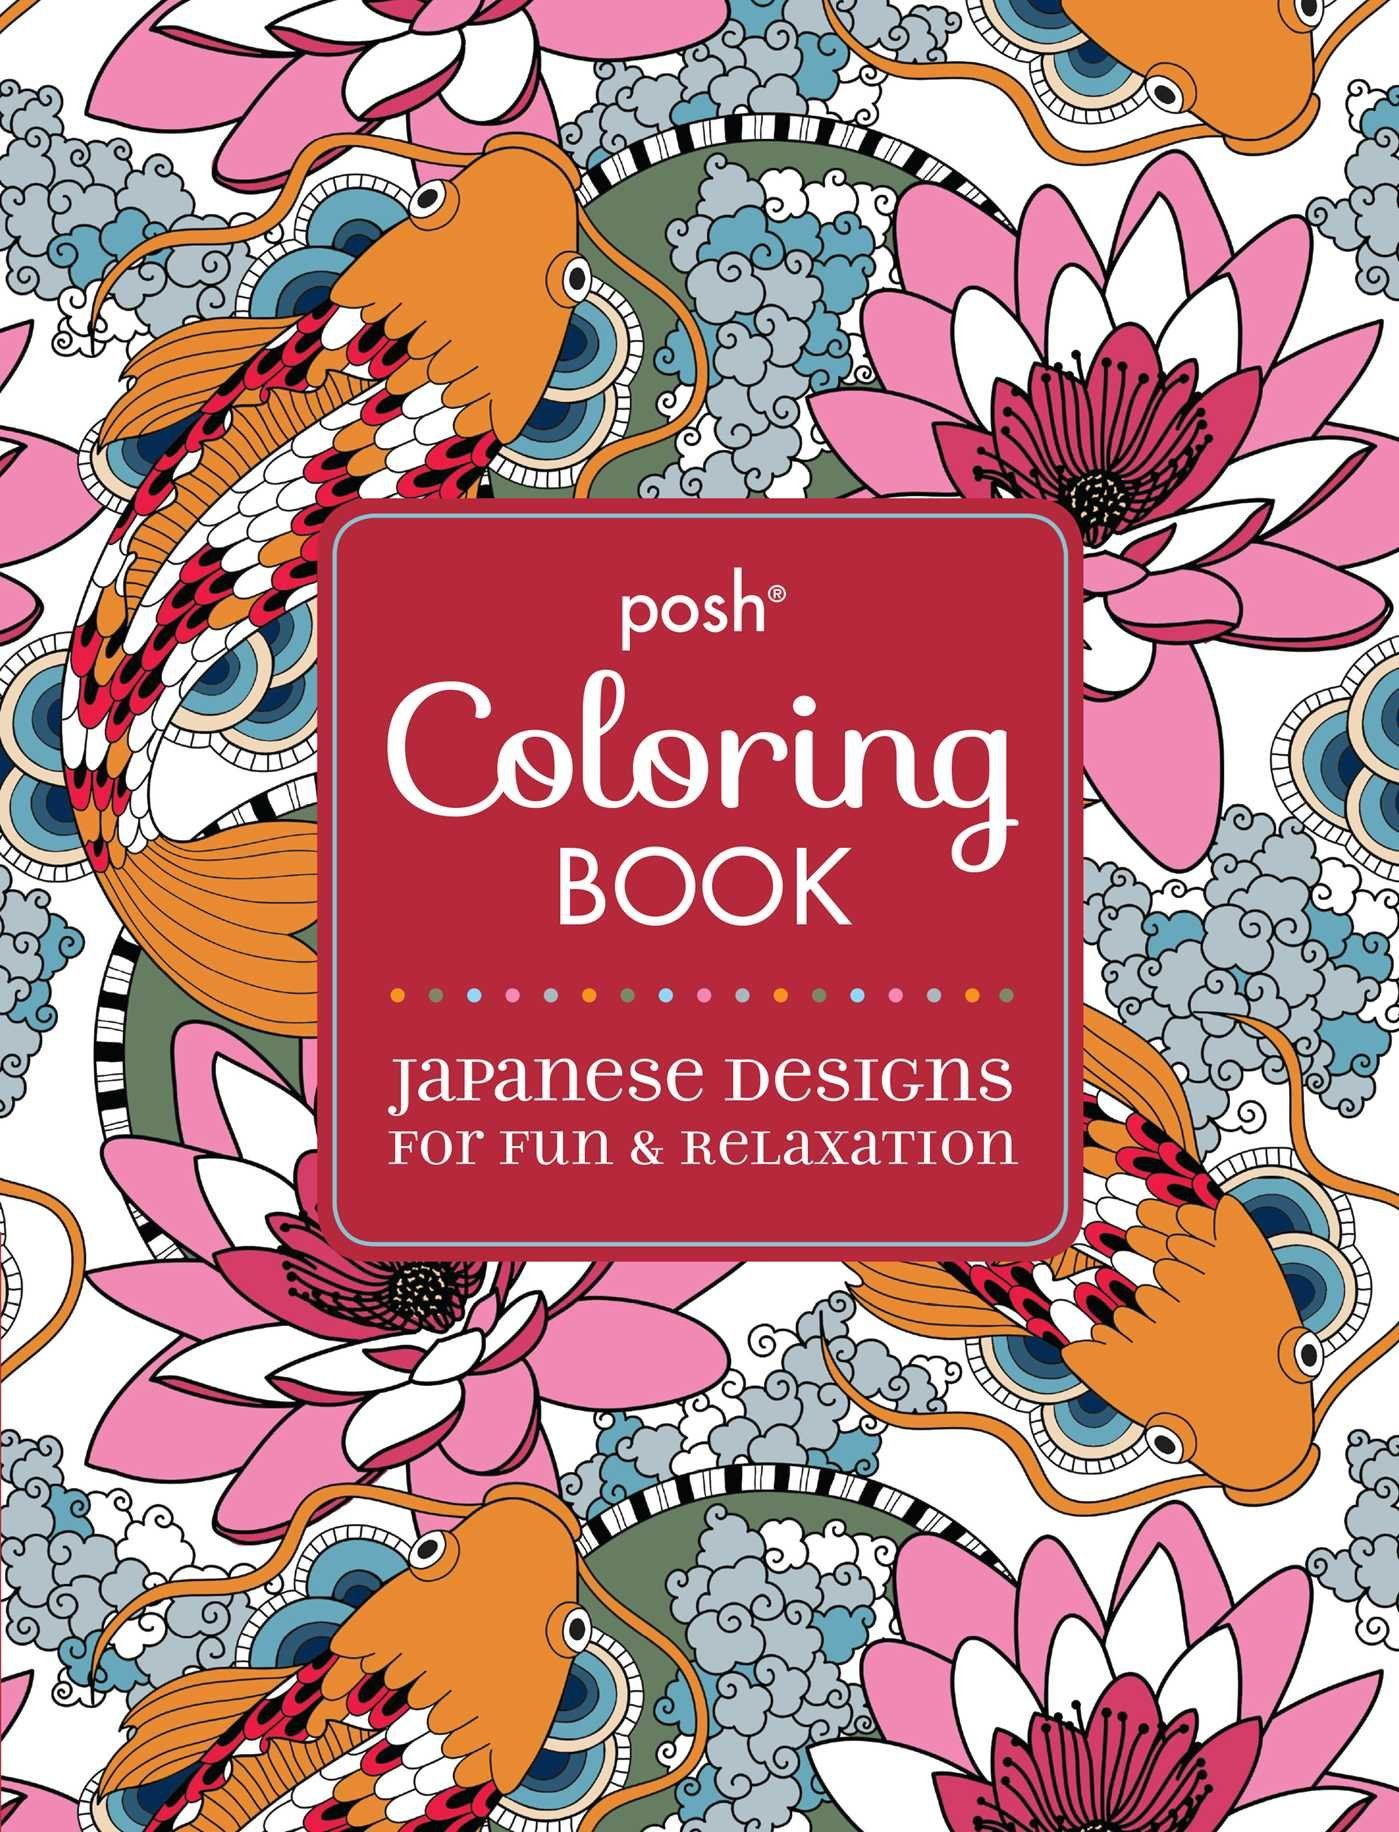 Adult Coloring Books Christmas Gift Guide - Coloring Books for ...